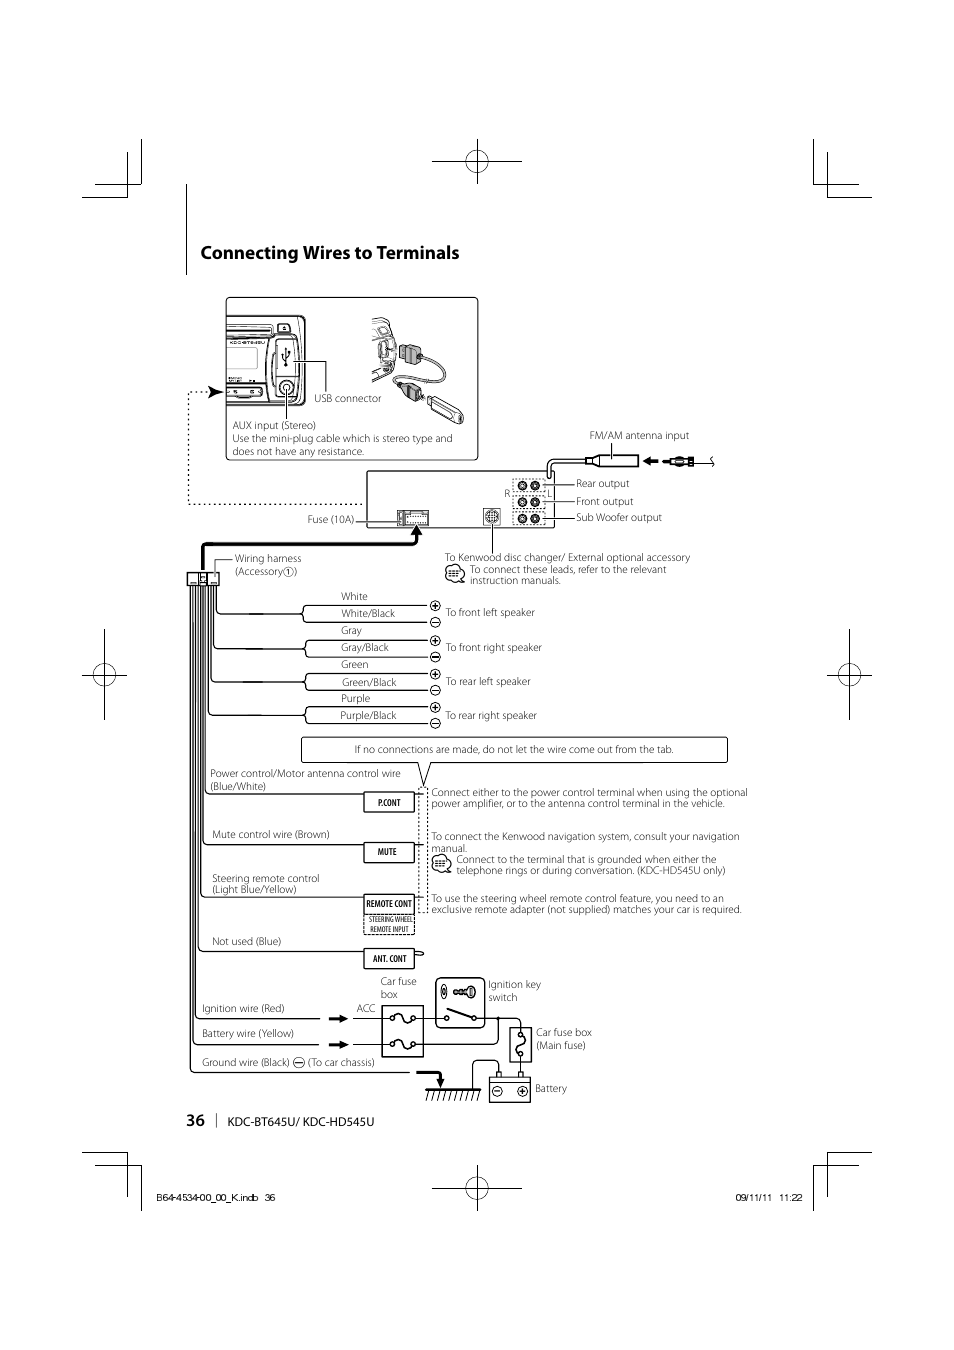 Kenwood Kdc Mp345u Wiring Diagram | Wiring Diagram on kenwood kdc 138 connector, kenwood cd receiver wire diagram, kenwood radio diagram, kenwood wiring harness diagram, kenwood radio kdc-152 wiring, kenwood stereo wiring, gm radio wiring harness diagram, kenwood home receiver diagram, kenwood speaker wiring diagram, kenwood kdc bt755hd wirining,